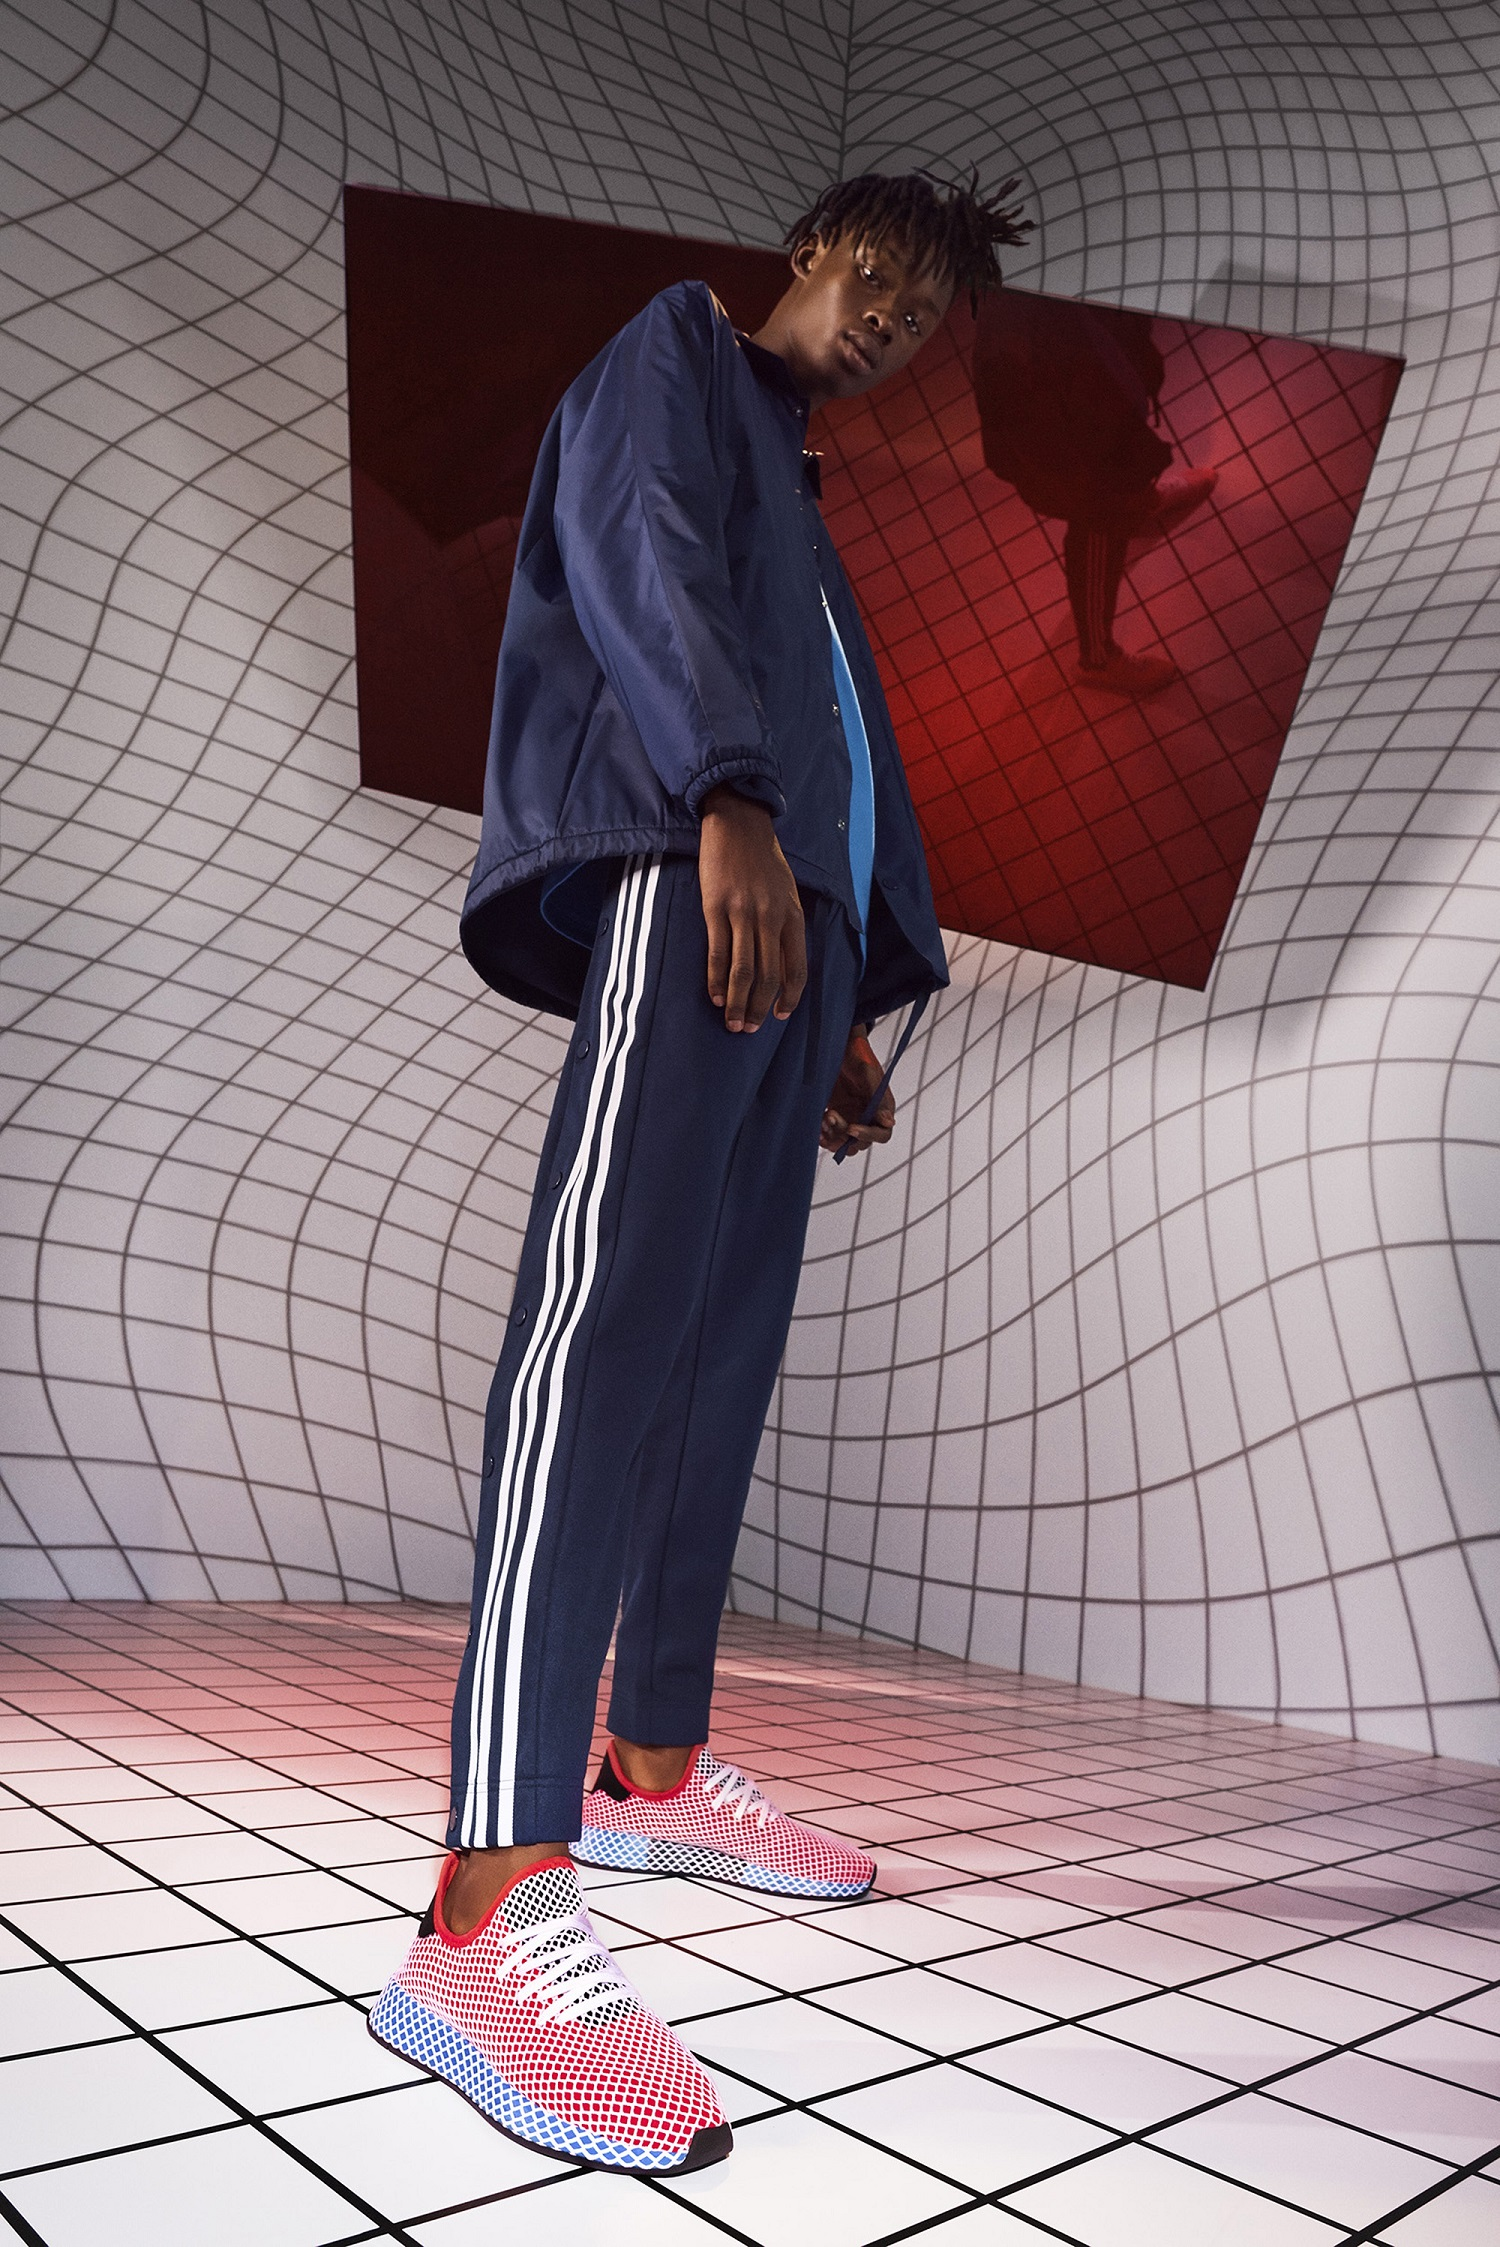 san francisco 02520 2aa33 Beirut, Lebanon (March 2018) – adidas Originals introduces its newest  sneaker, Deerupt — a contemporary take on adidas heritage realized in a  radically new ...